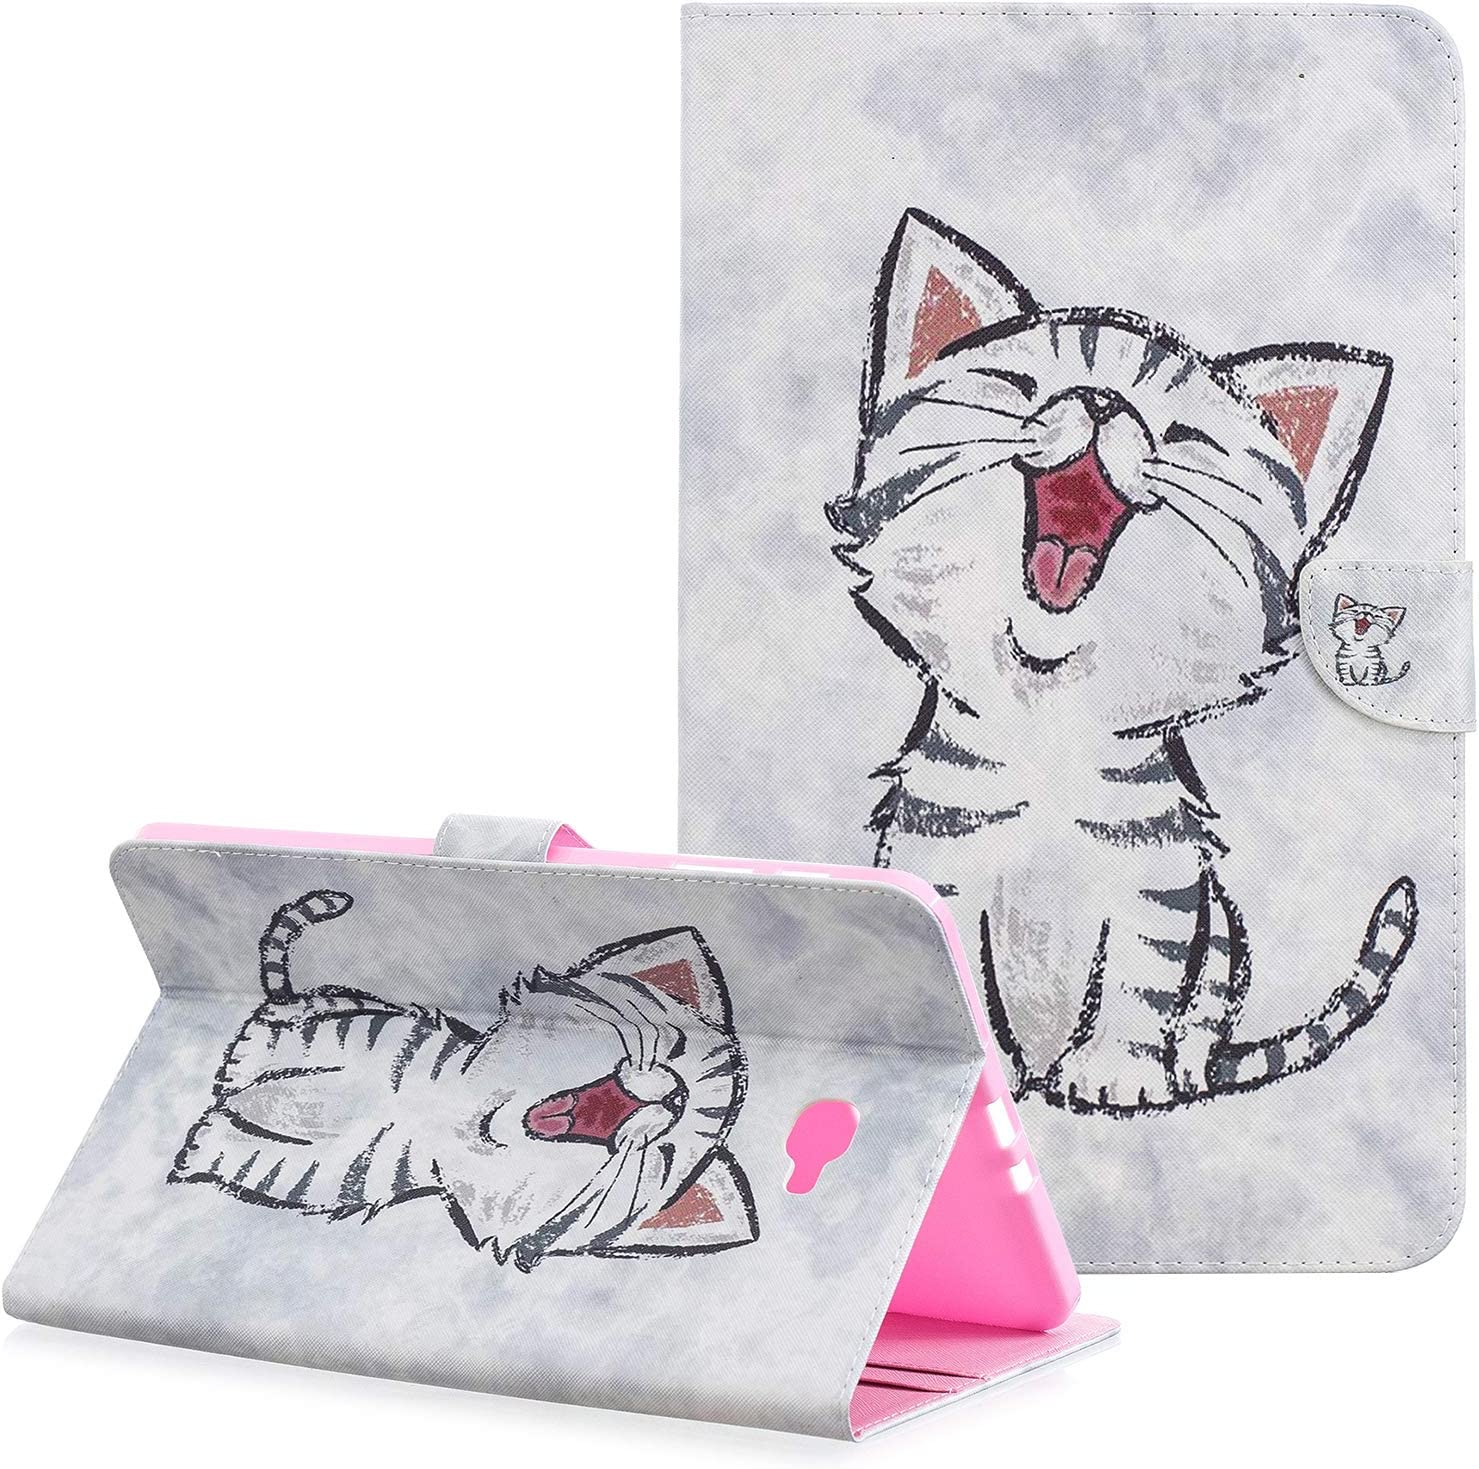 Galaxy Tab A 10.1 Case, Case for Samsung 10.1 Tablet - Dteck Flip Leather Smart Stand Cover with Auto Sleep/Wake for Samsung Tab A 10.1 Inch (NO S Pen Version SM-T580/T585/T587)- Happy Cat